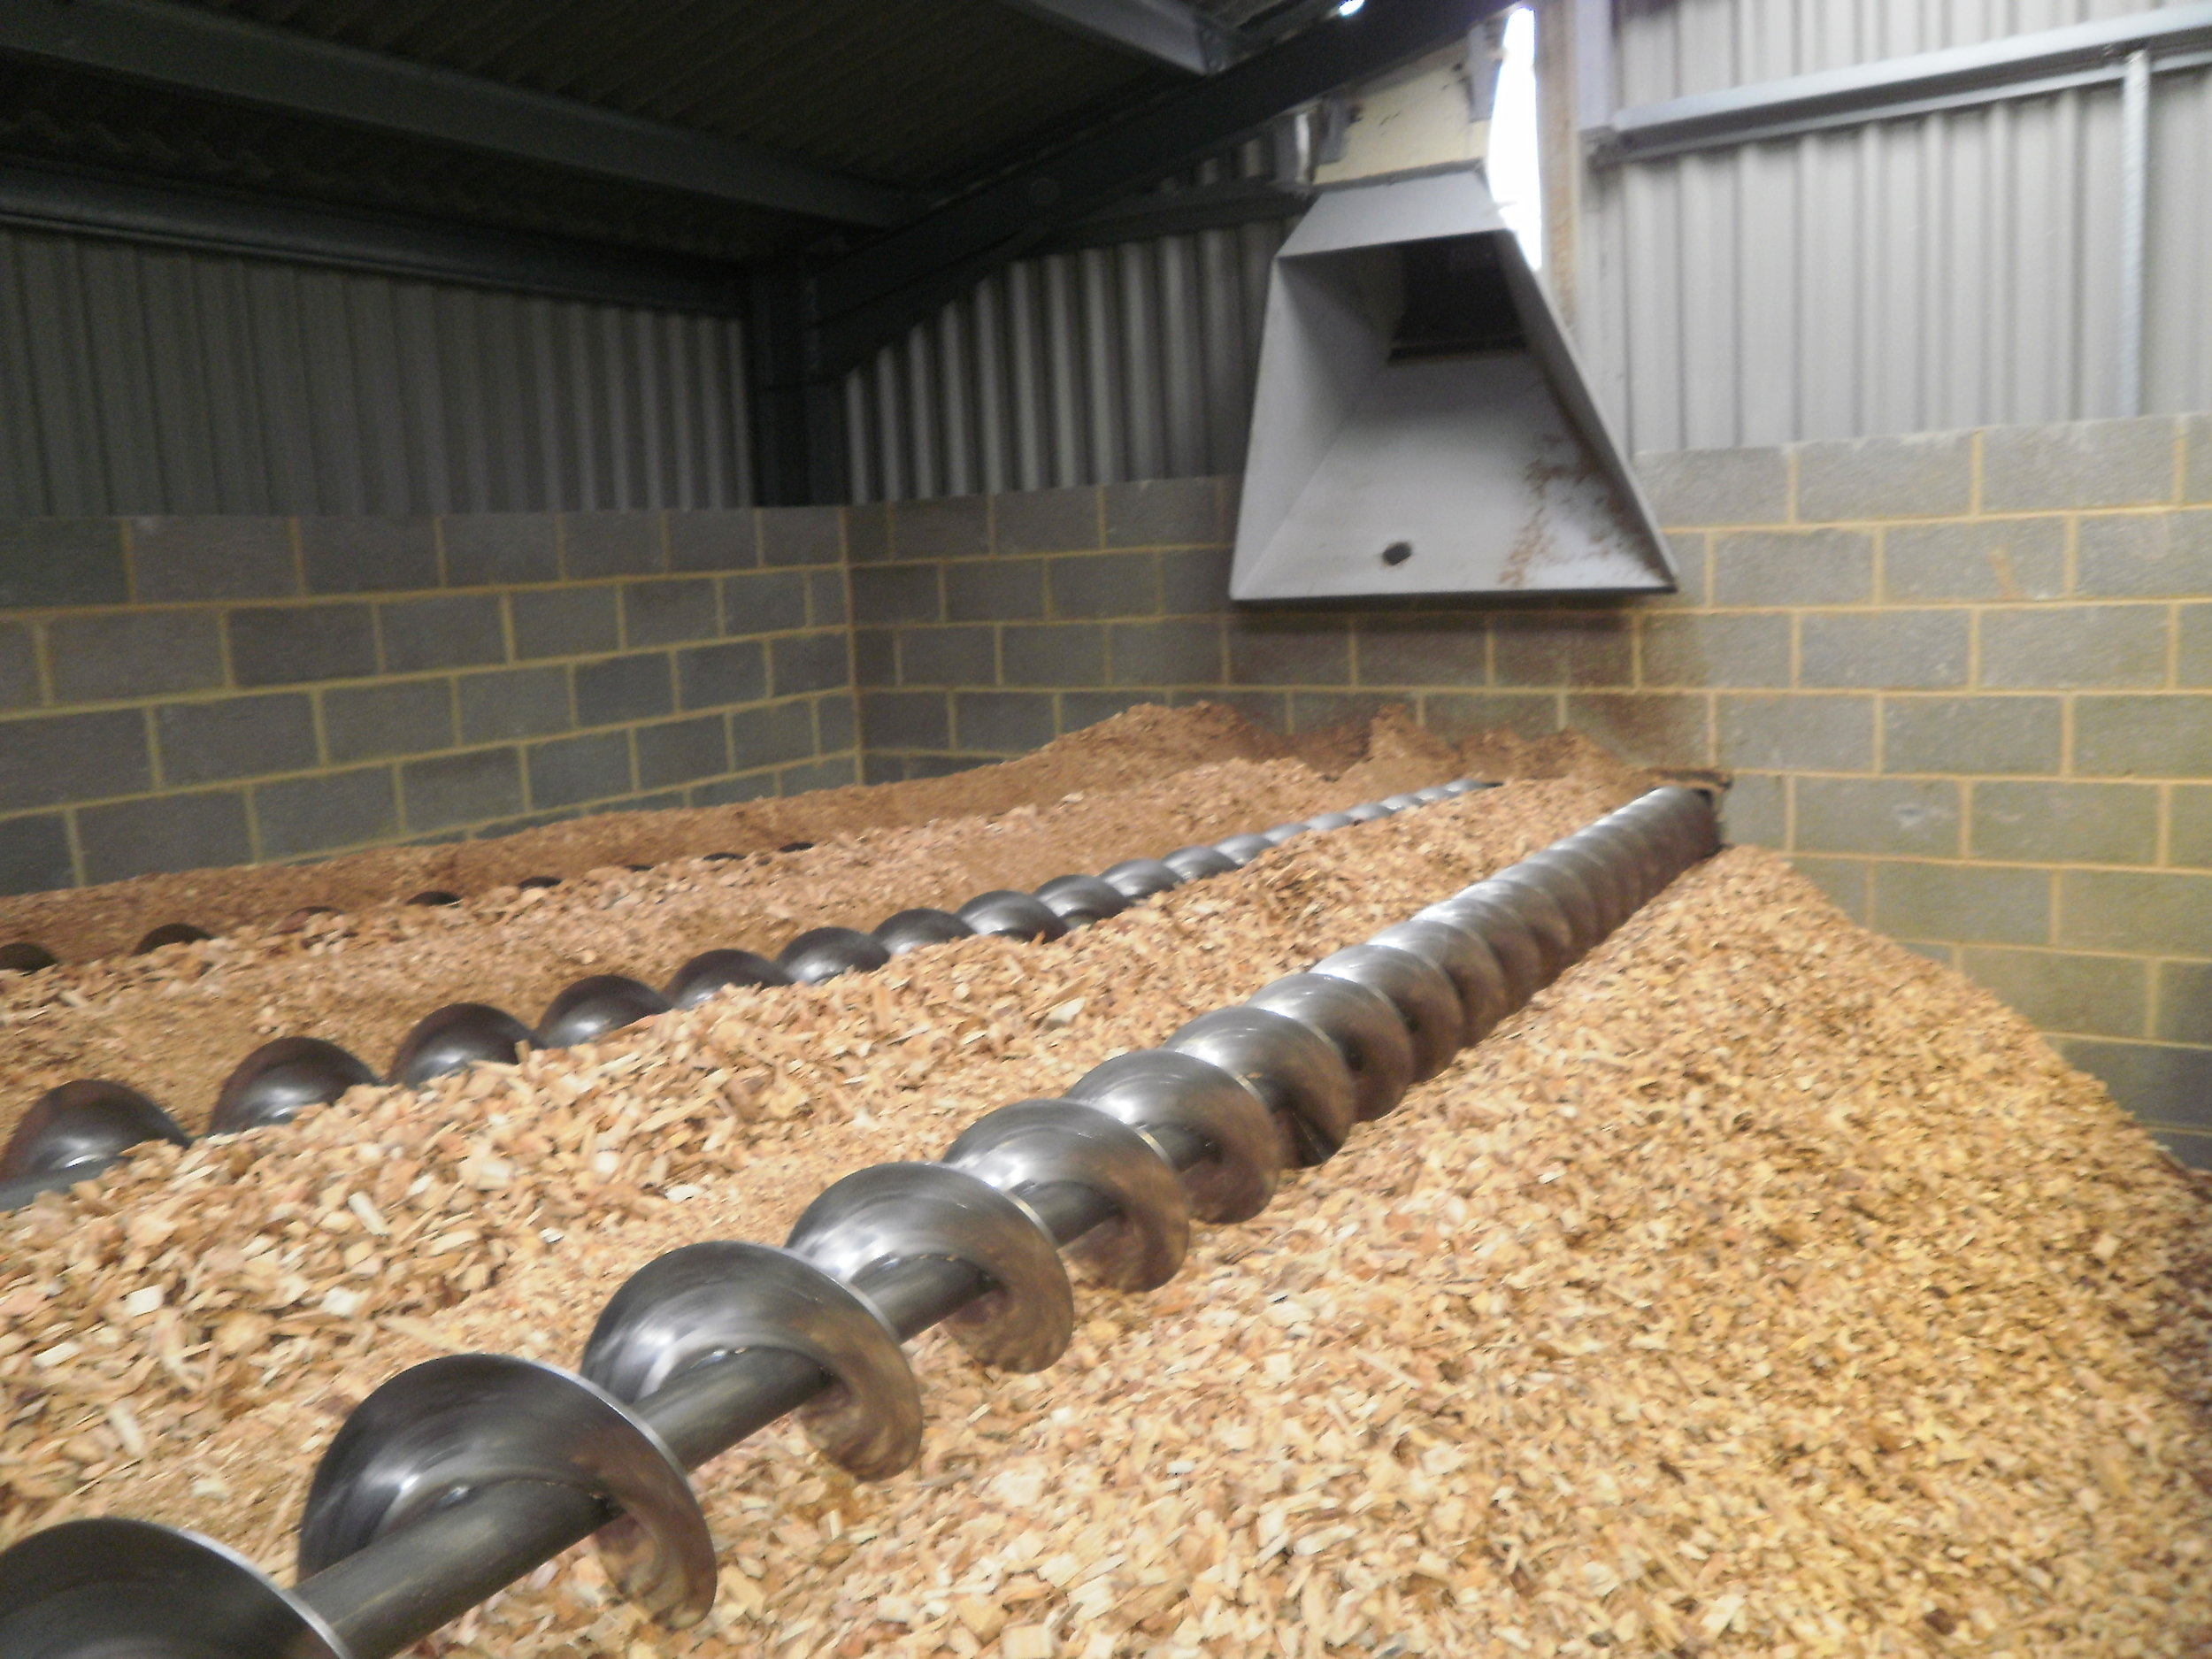 BIOMASS FUEL SYSTEMS - How we can help biomass boiler owners.